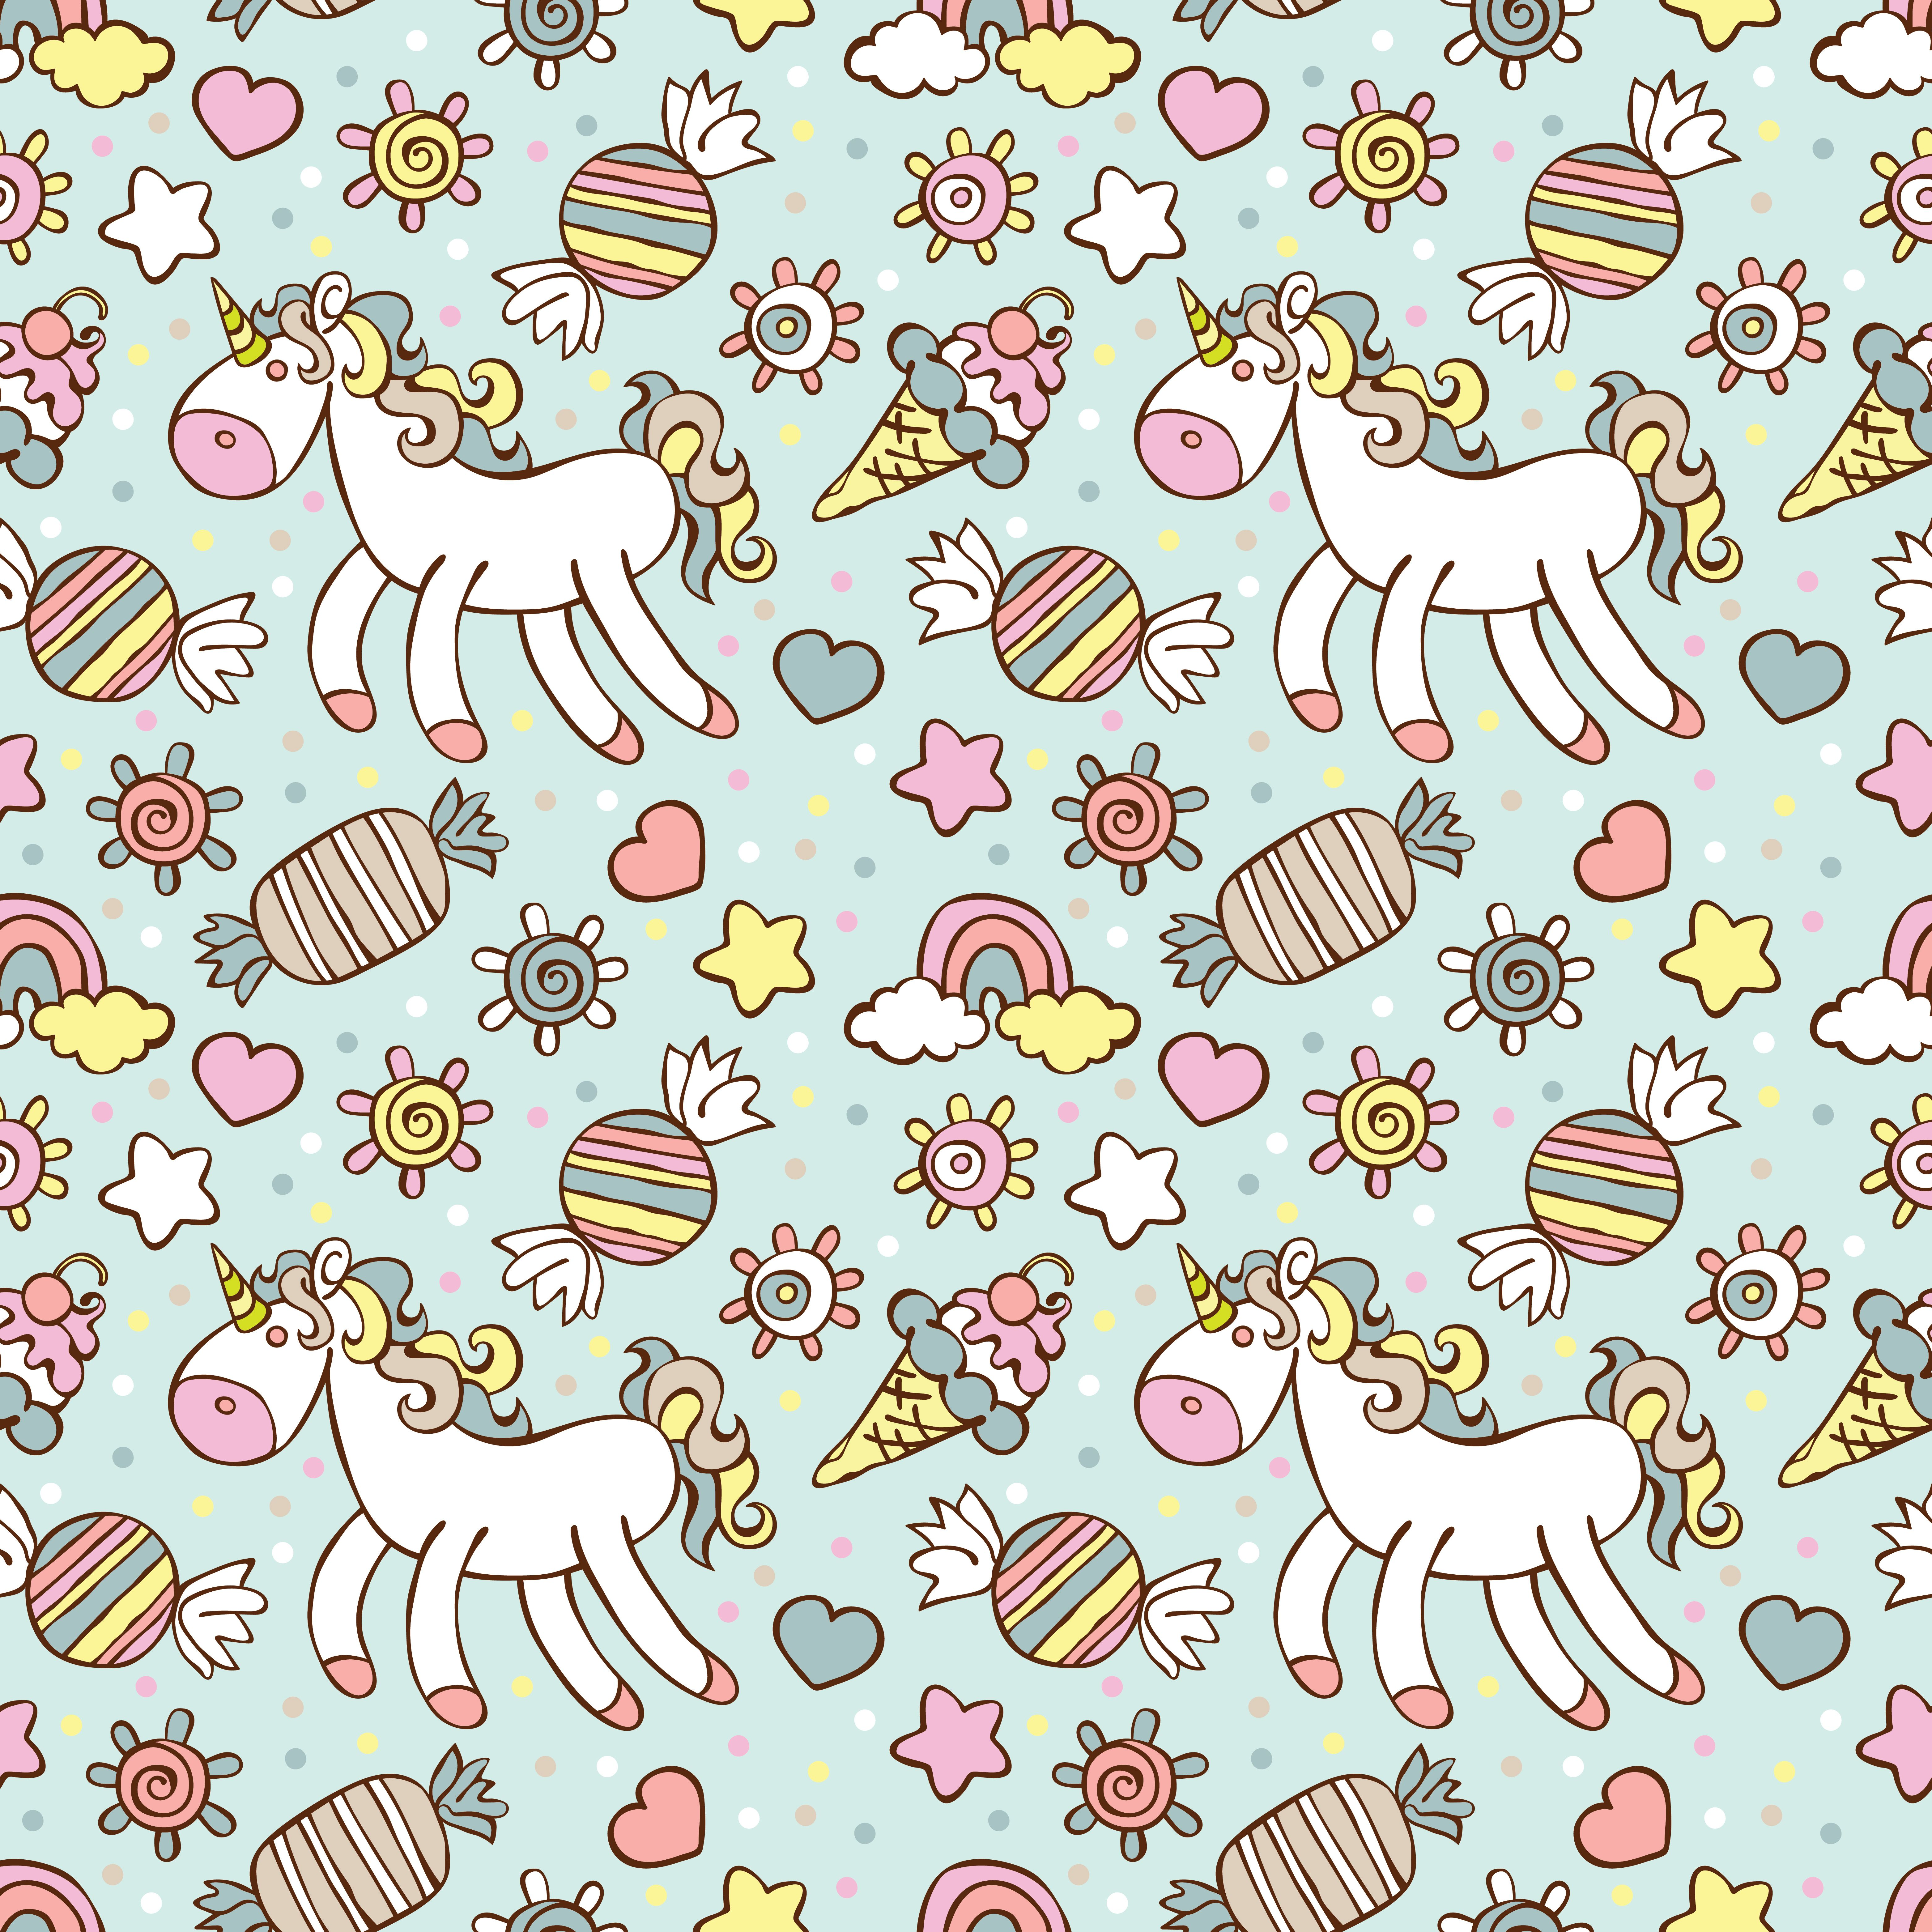 Cute Colorful Ice Cream Seamless Pattern Background: Unicorn. Ice Cream, Candy. Rainbow And Cloud. Sprockets